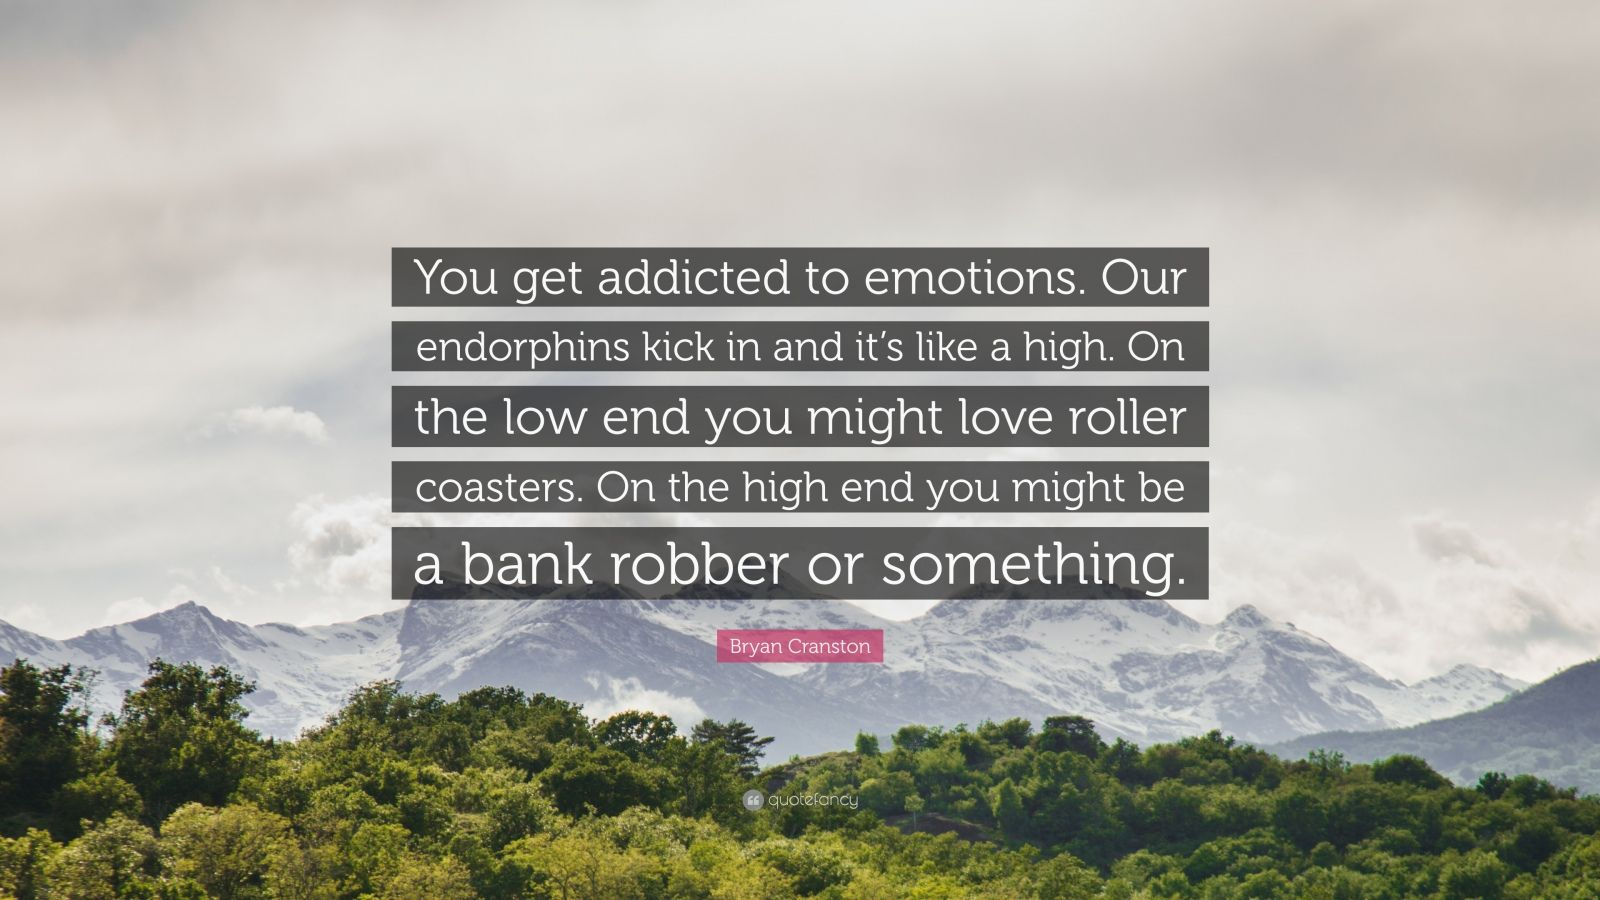 """Bryan Cranston Quote: """"You get addicted to emotions. Our endorphins kick in and it's like a high. On the low end you might love roller coasters. On the high end you might be a bank robber or something."""""""